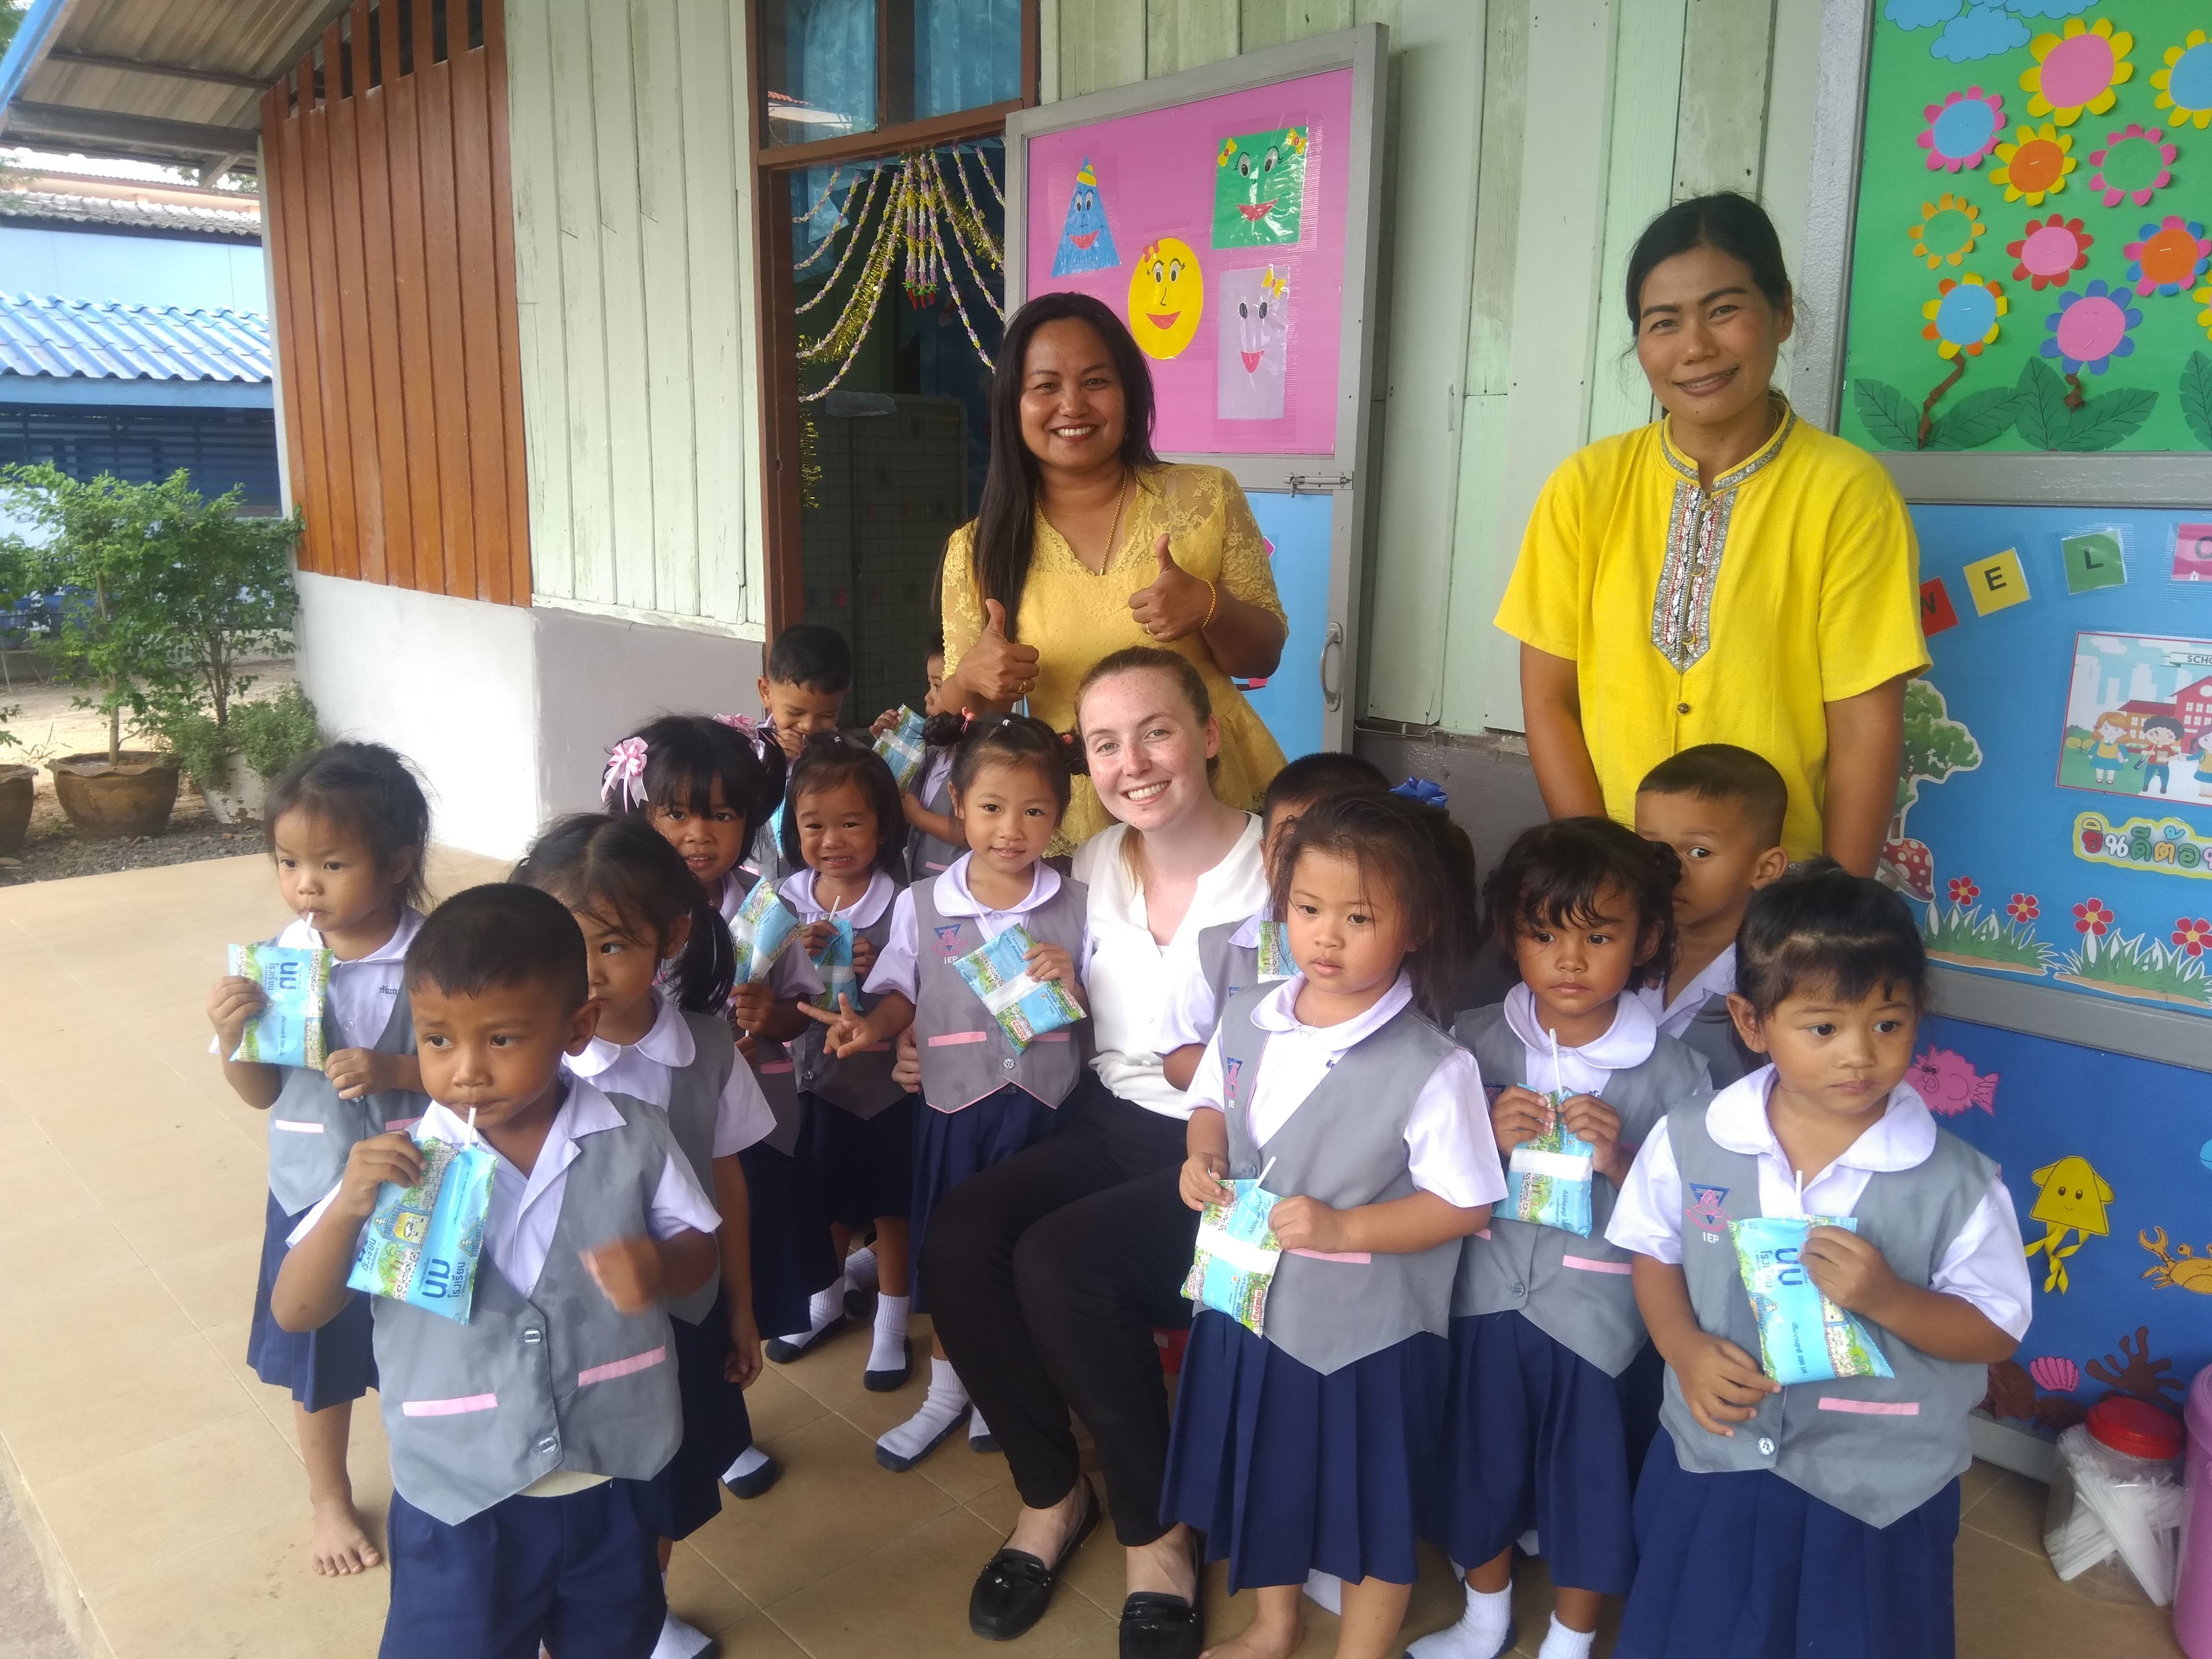 Interview with Caoimhe in Thailand